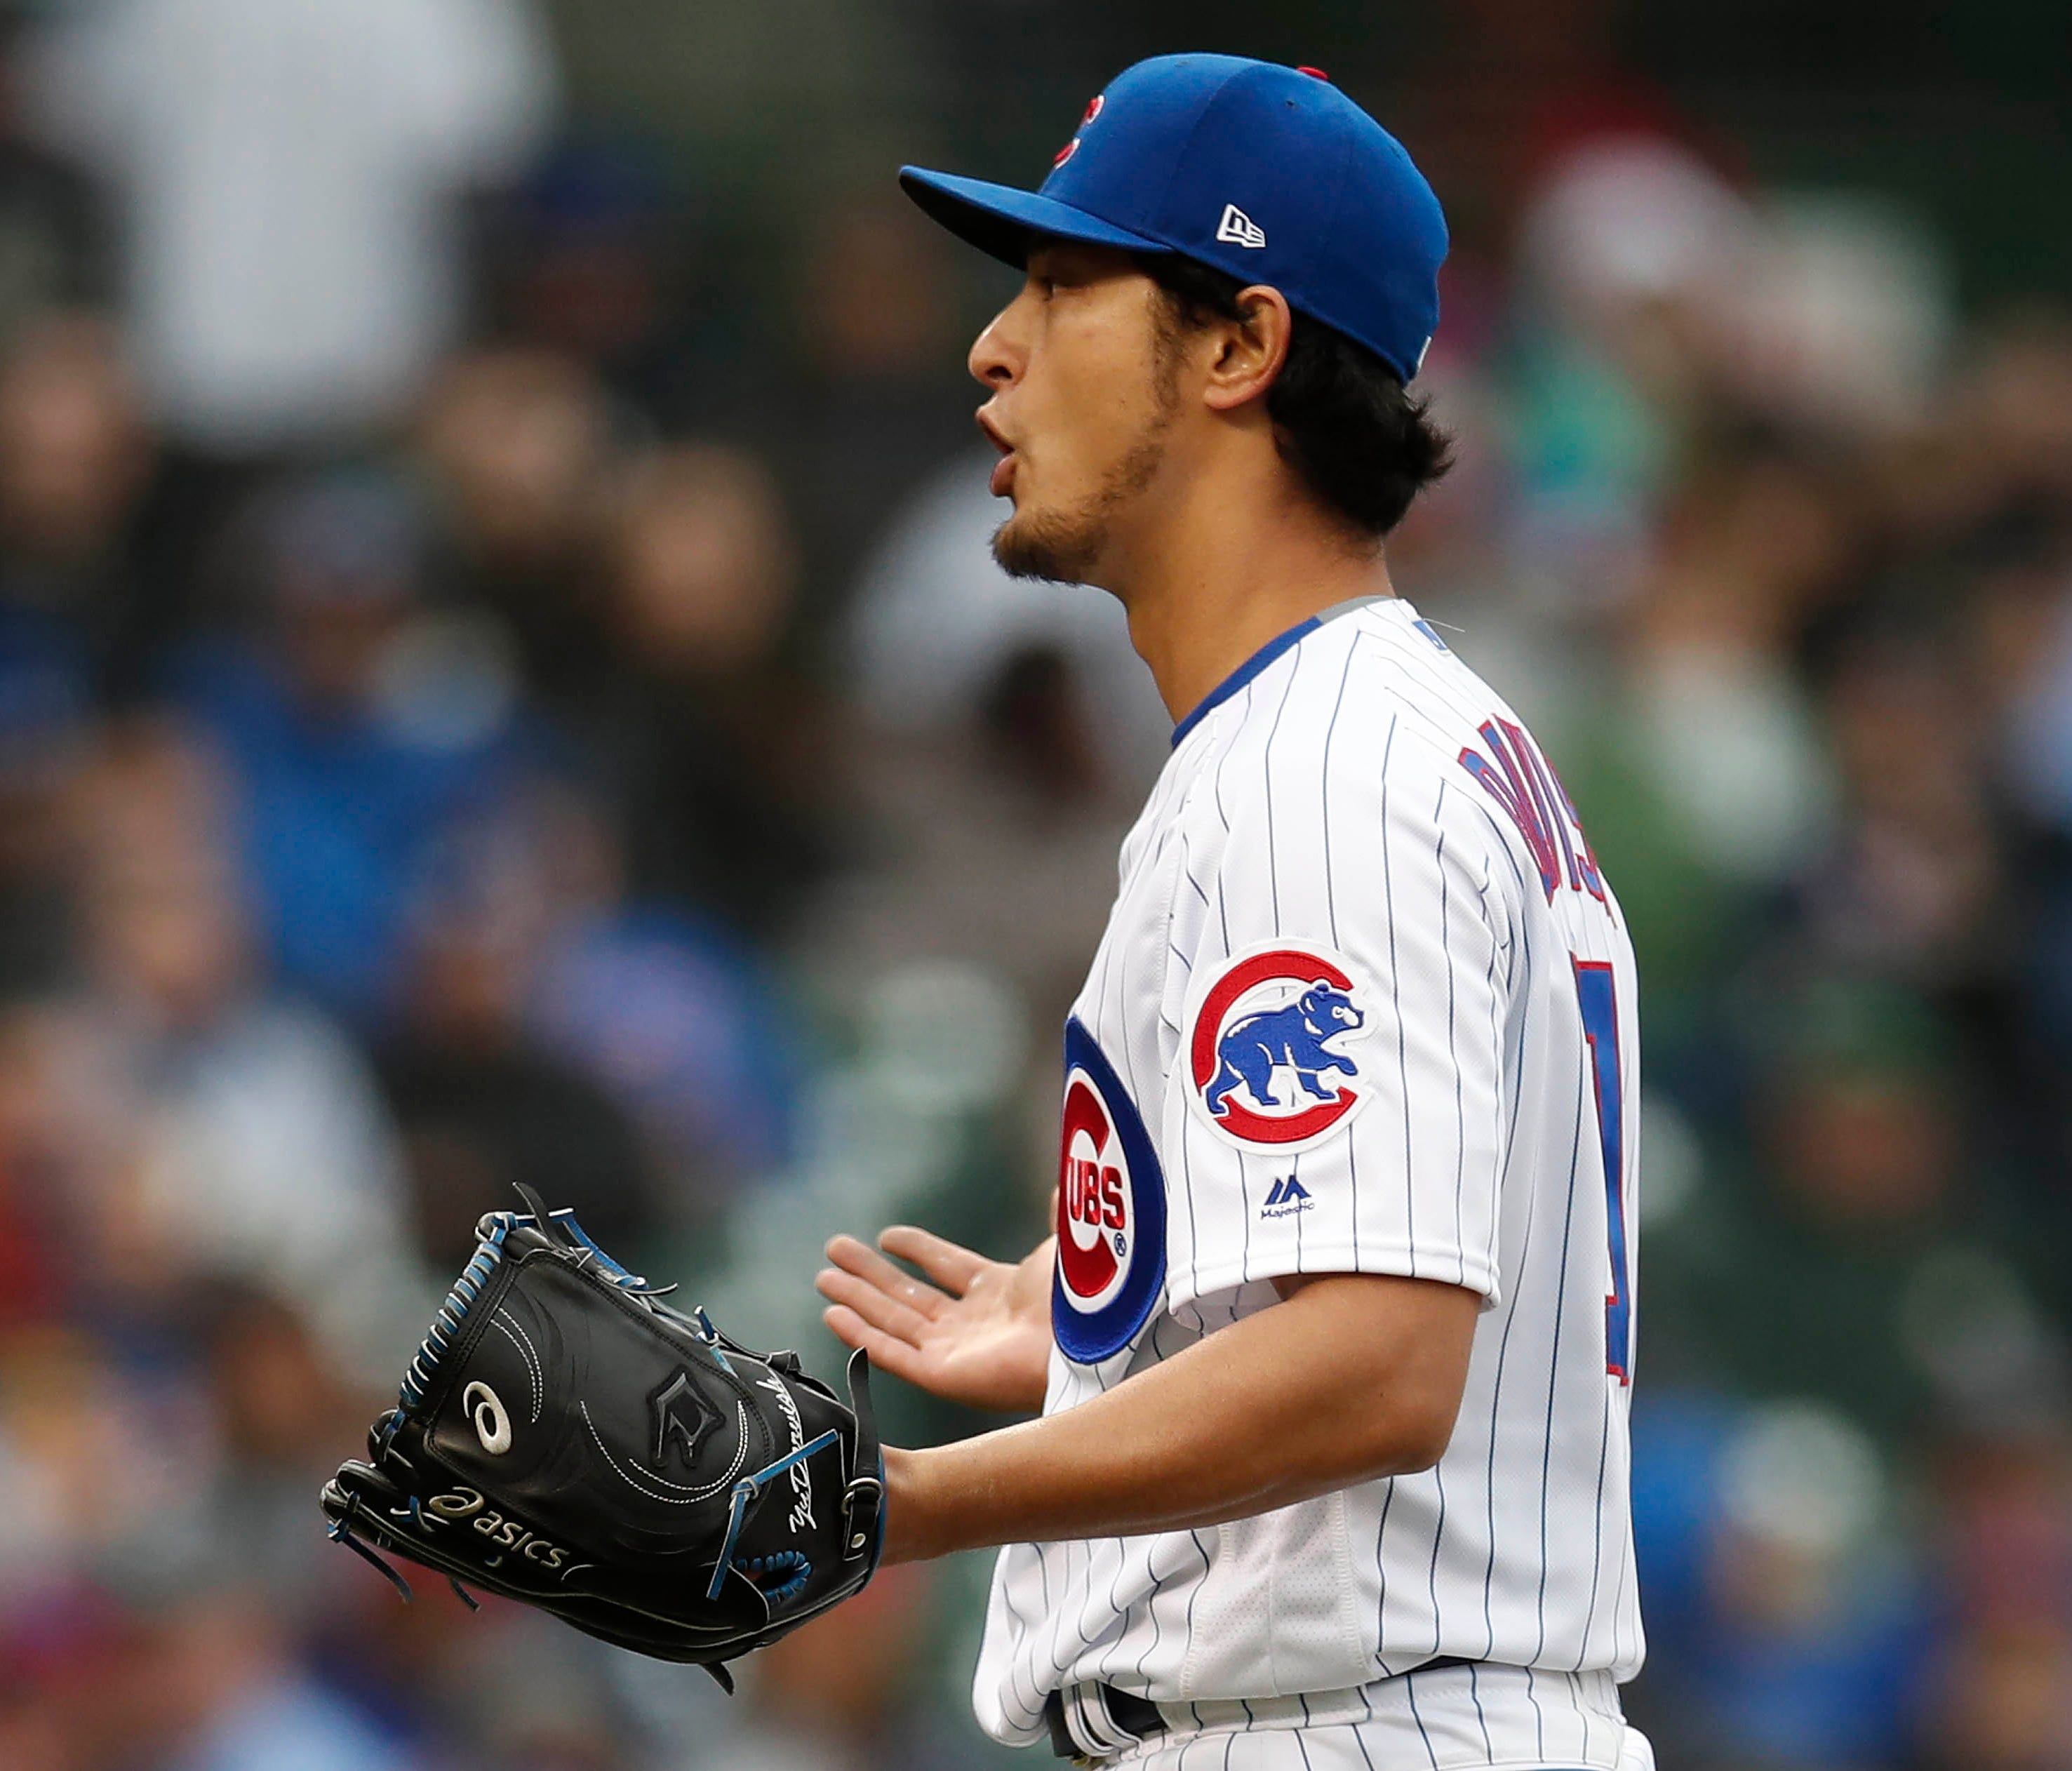 Yu Darvish has a 6.00 ERA through three starts and the Cubs rotation is toting a 5.40 mark.